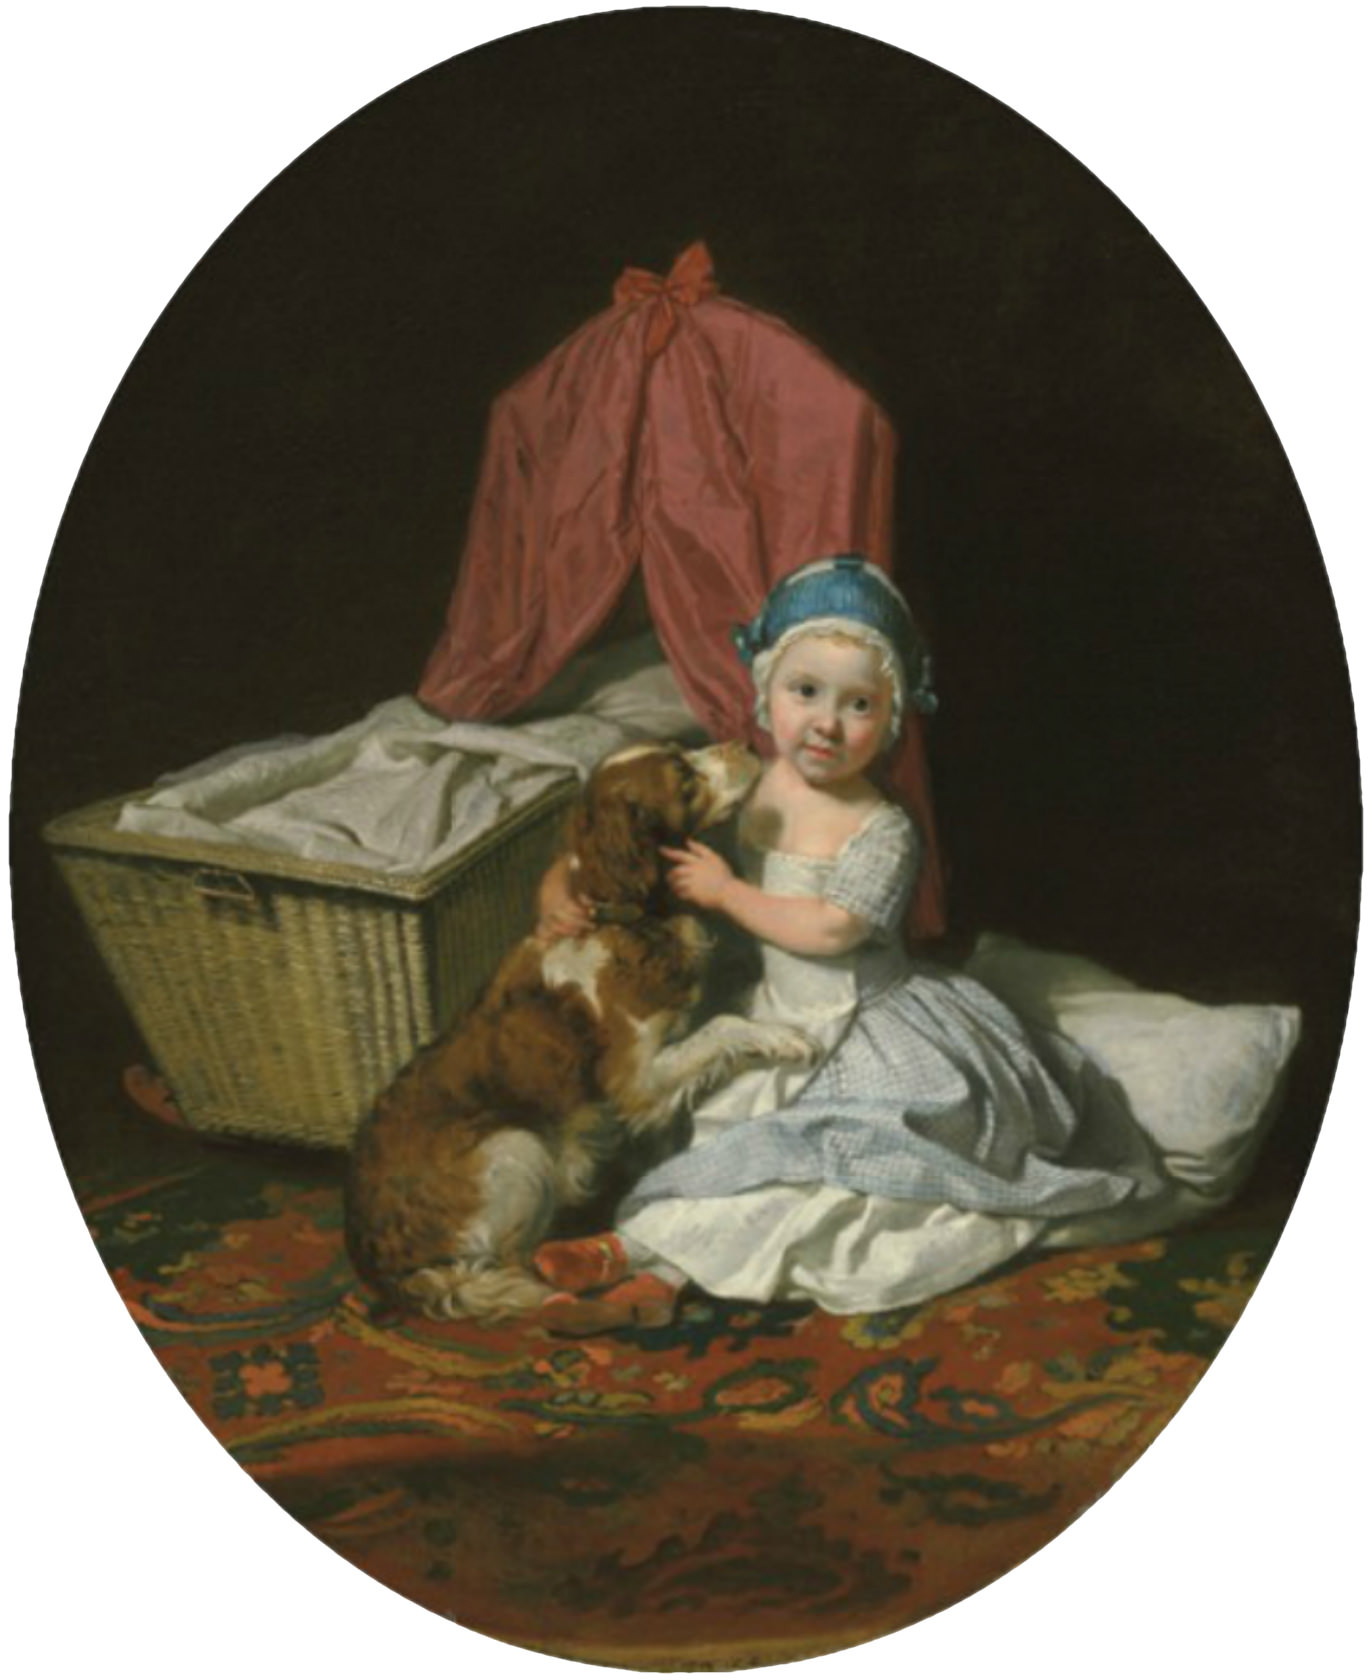 Hester Maria Thrale and Belle by Zoffany 1766